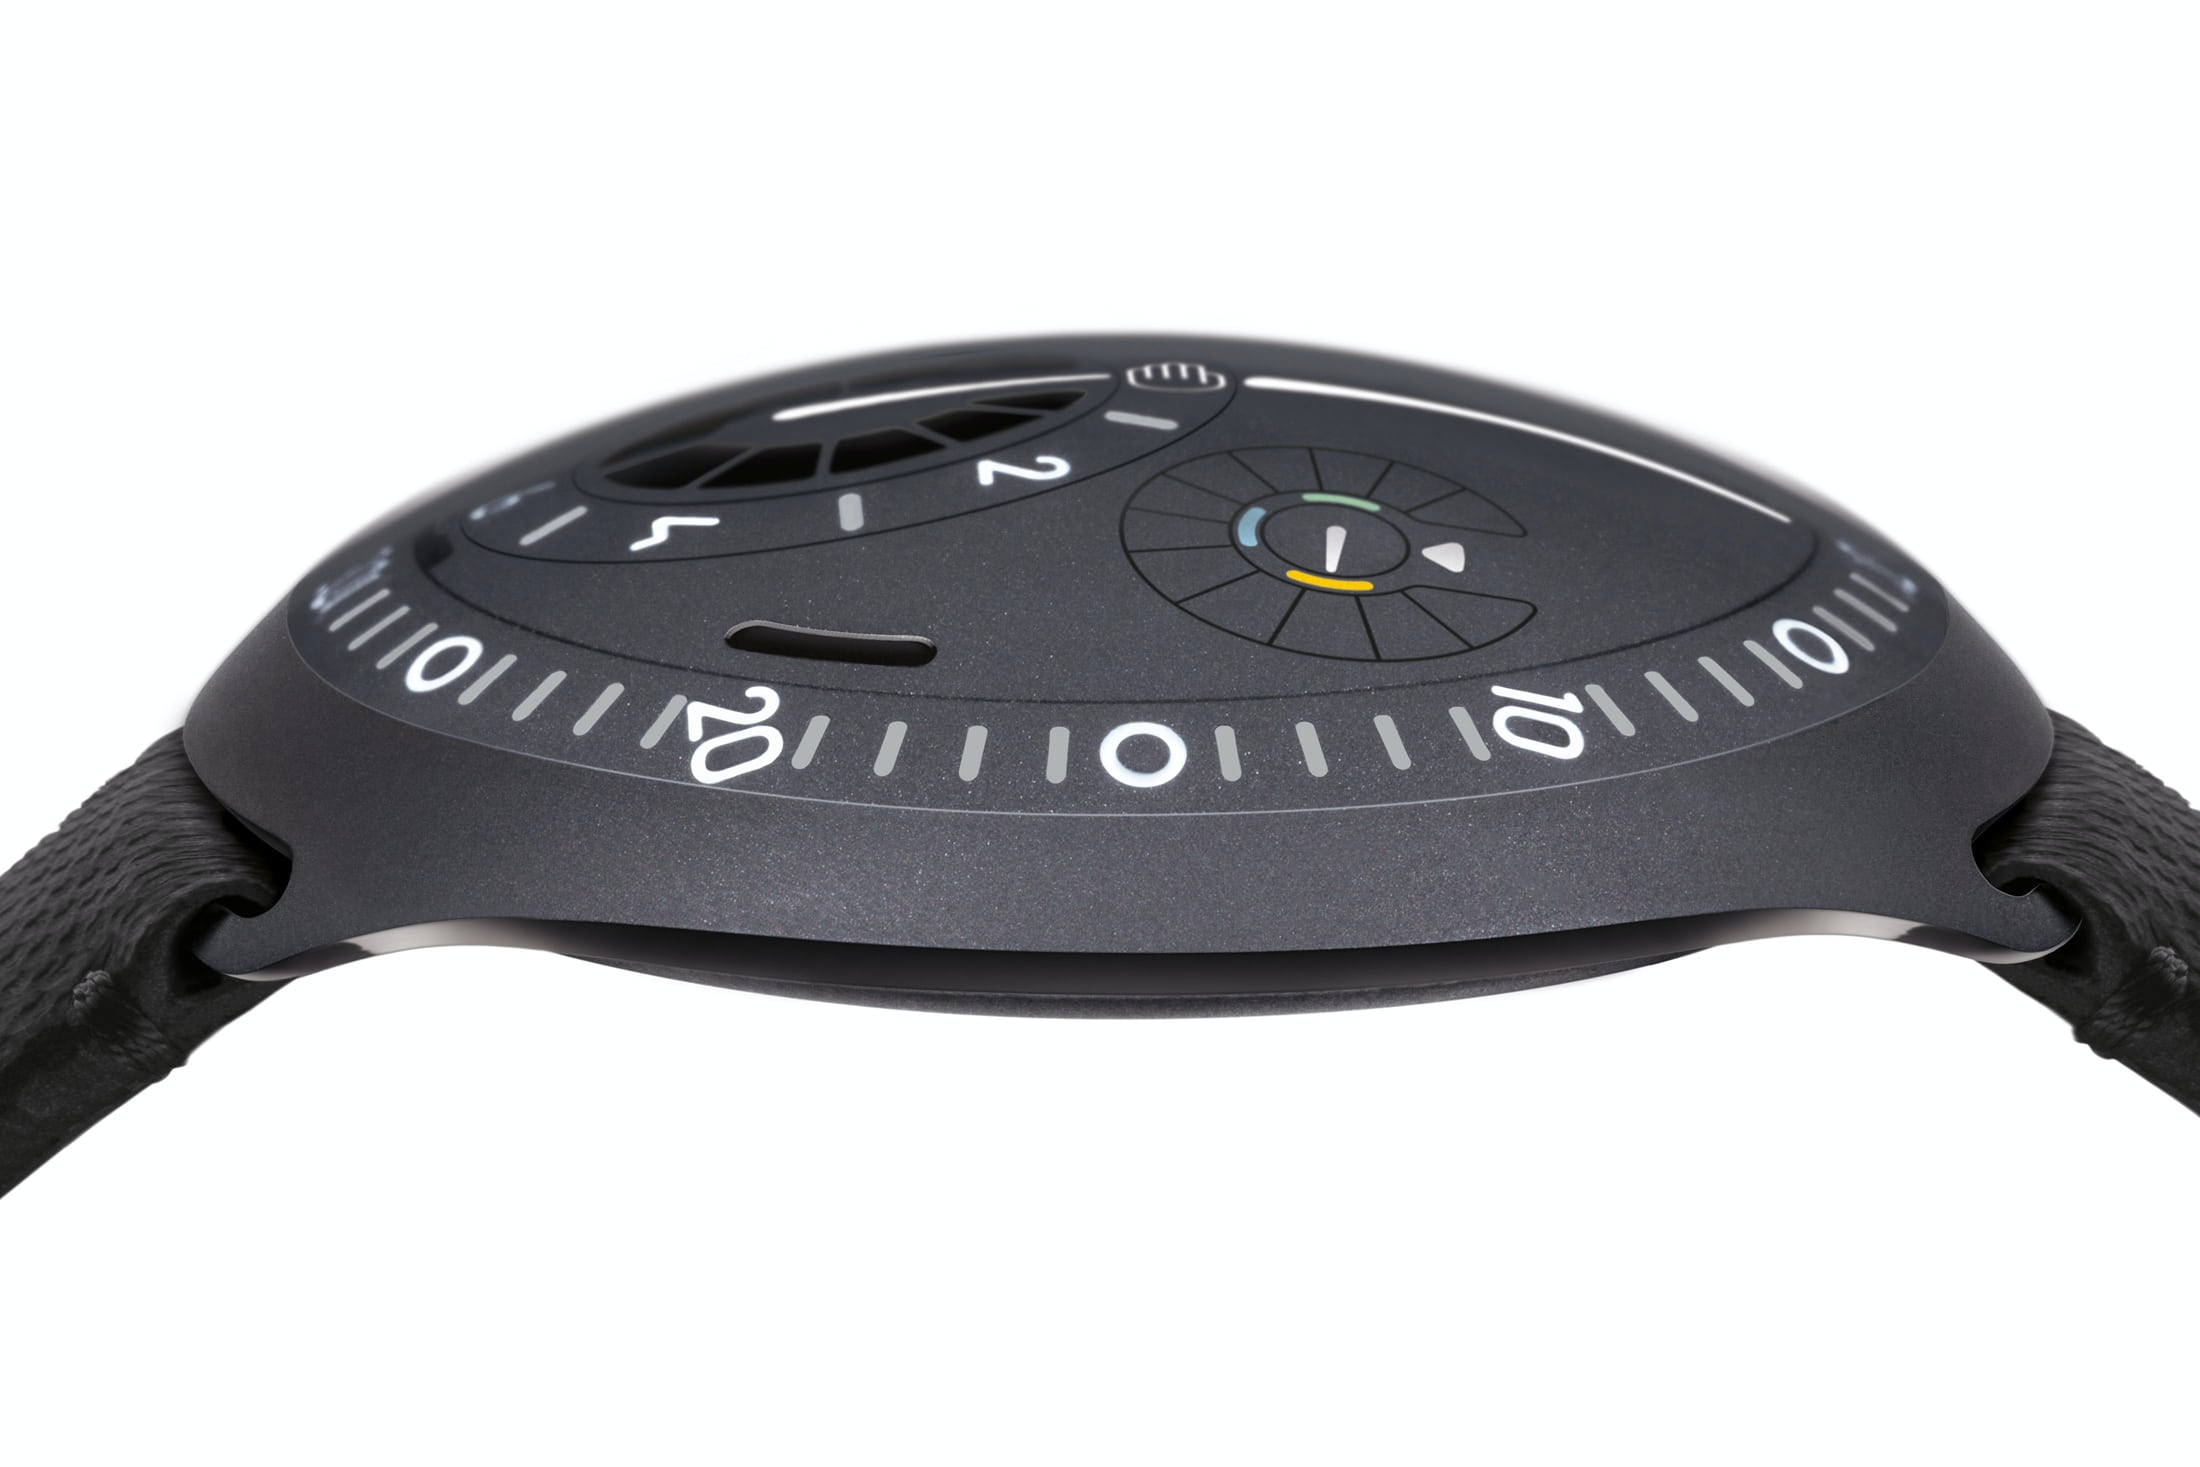 ressence-type-2-side-angle